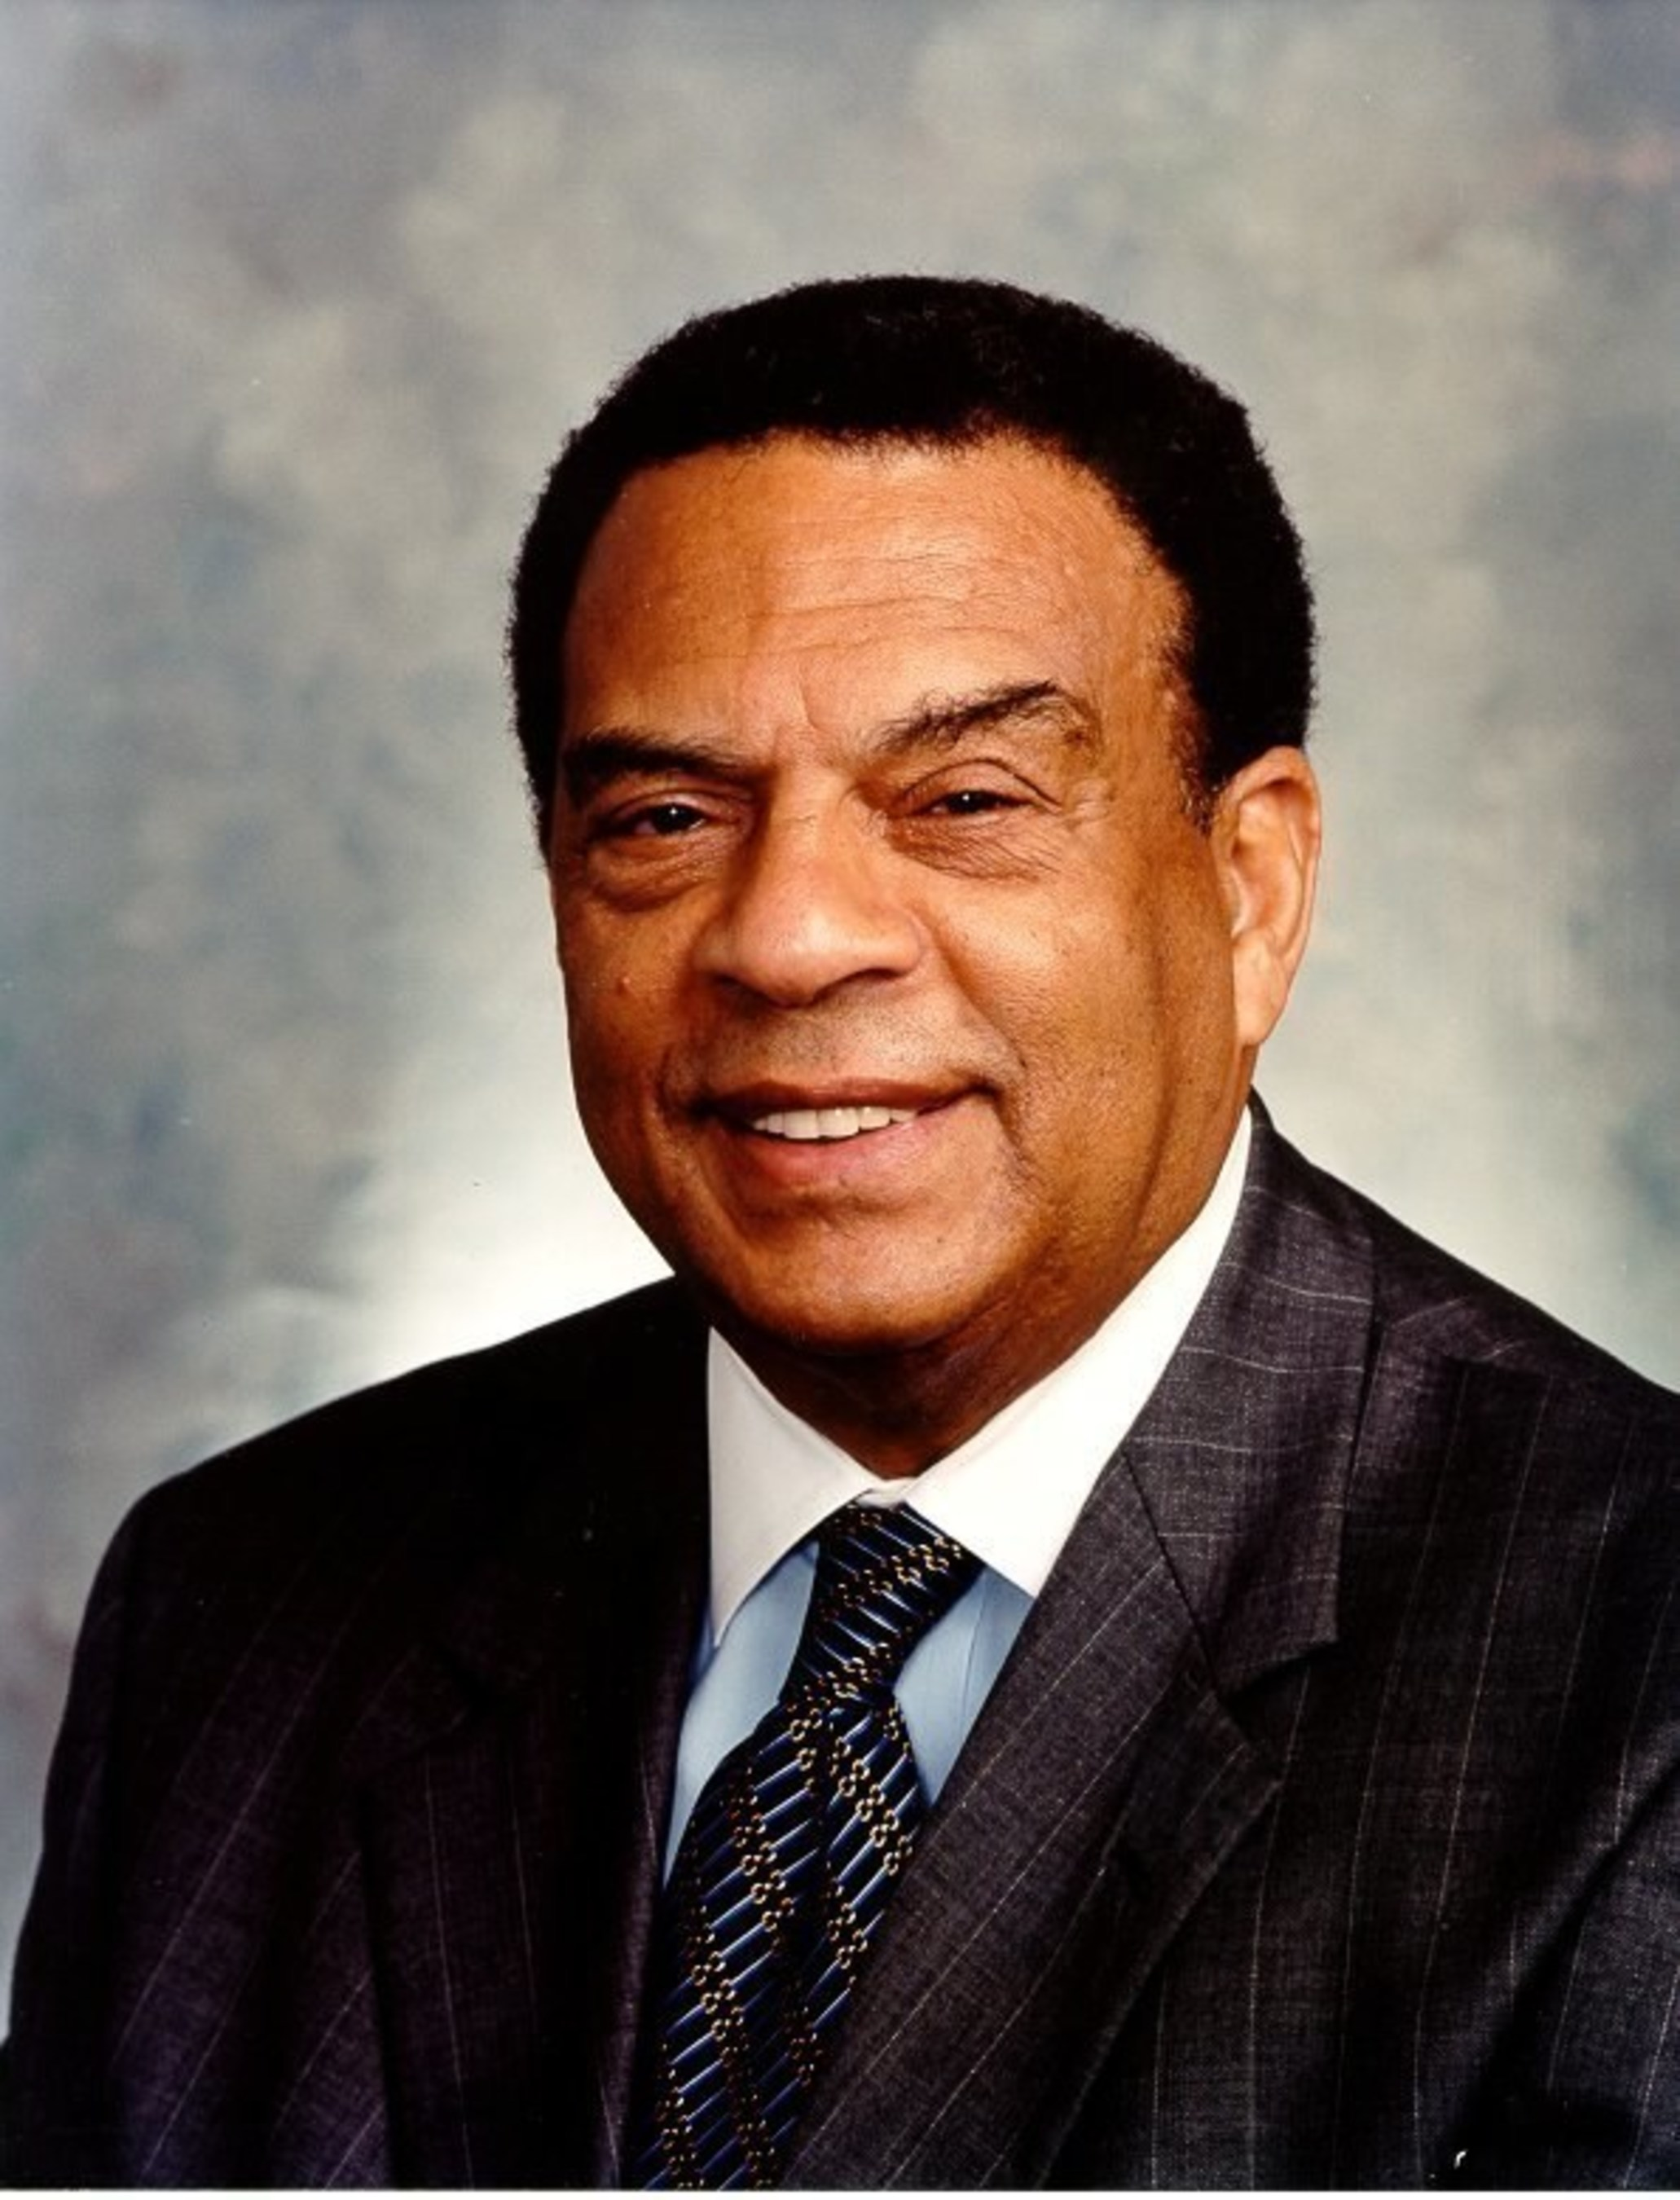 Former Atlanta Mayor and U.S. Ambassador Andrew Young has sent a powerful letter to Gov. Deal and House Speaker Ralston calling for a repeal of Georgia's water fluoridation law, which remains in effect despite burgeoning evidence that drinking fluoride chemicals is not safe nor is it effective for cavity reduction.